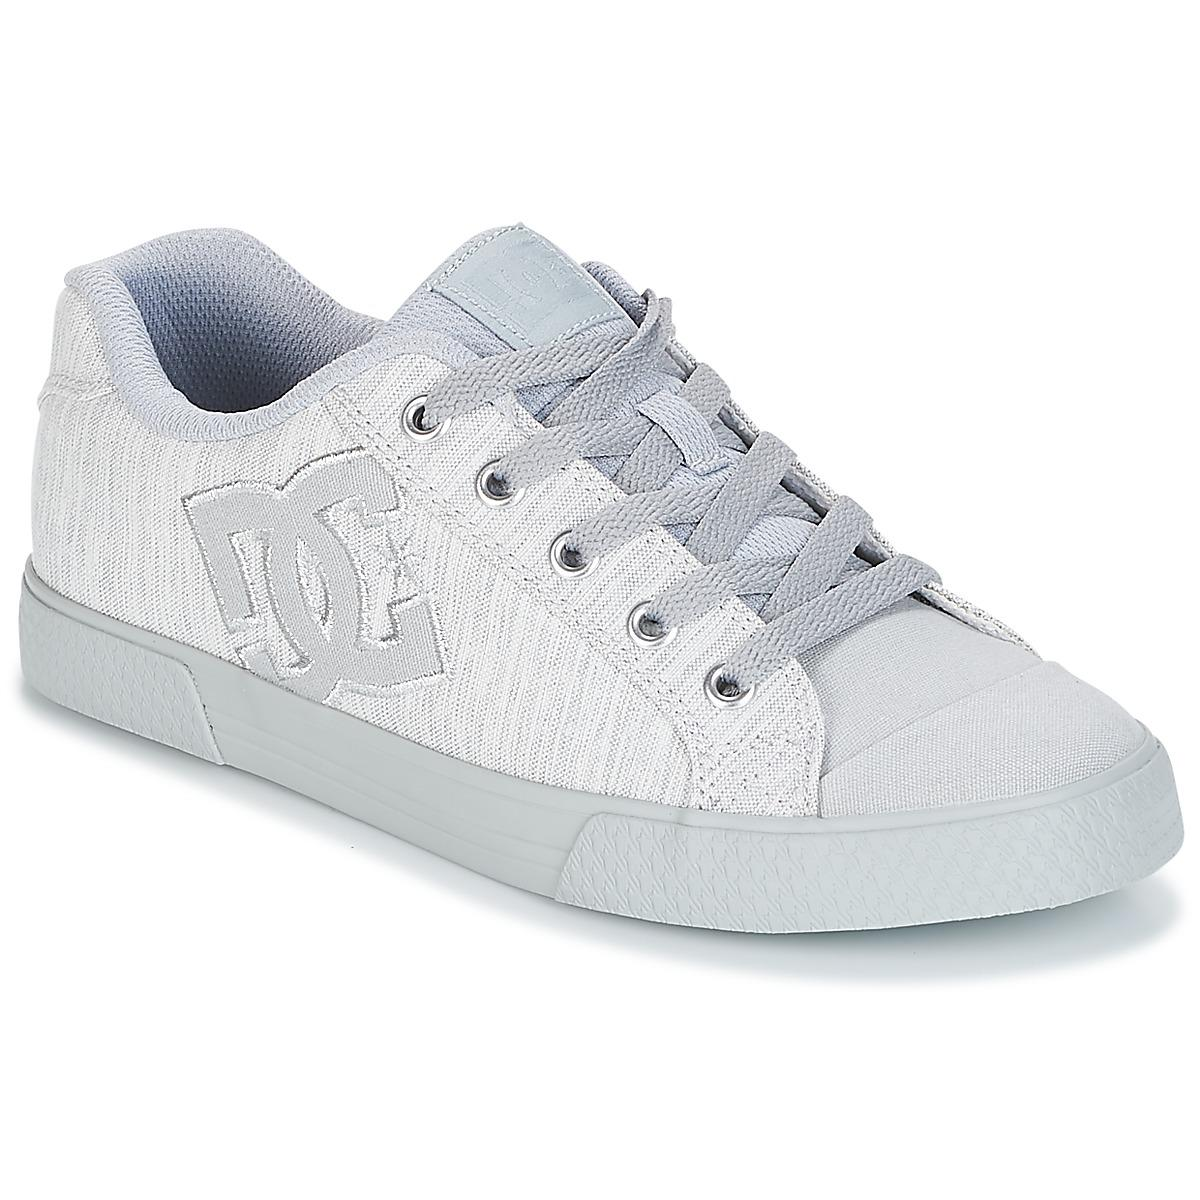 Outlet Deals Cheap Wiki DC EVAN HI V SE J SHOE ROW women's Shoes (High-top Trainers) in Original Free Shipping Cheapest Price xdyecfMHeH